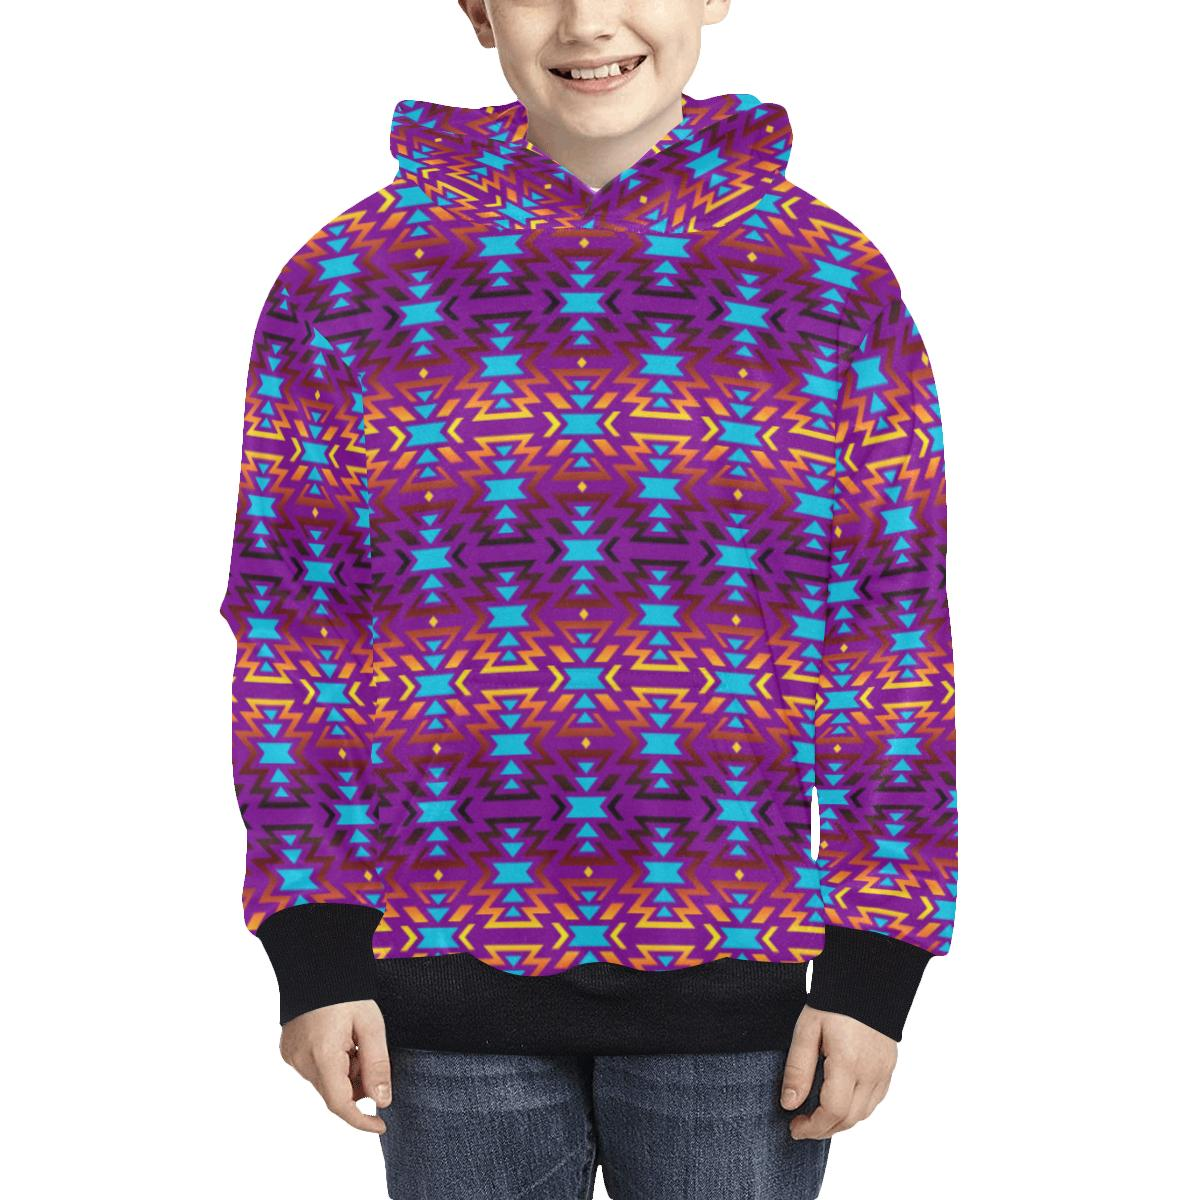 Fire Colors and Turquoise Purple Kids' All Over Print Hoodie (Model H38) Kids' AOP Hoodie (H38) e-joyer